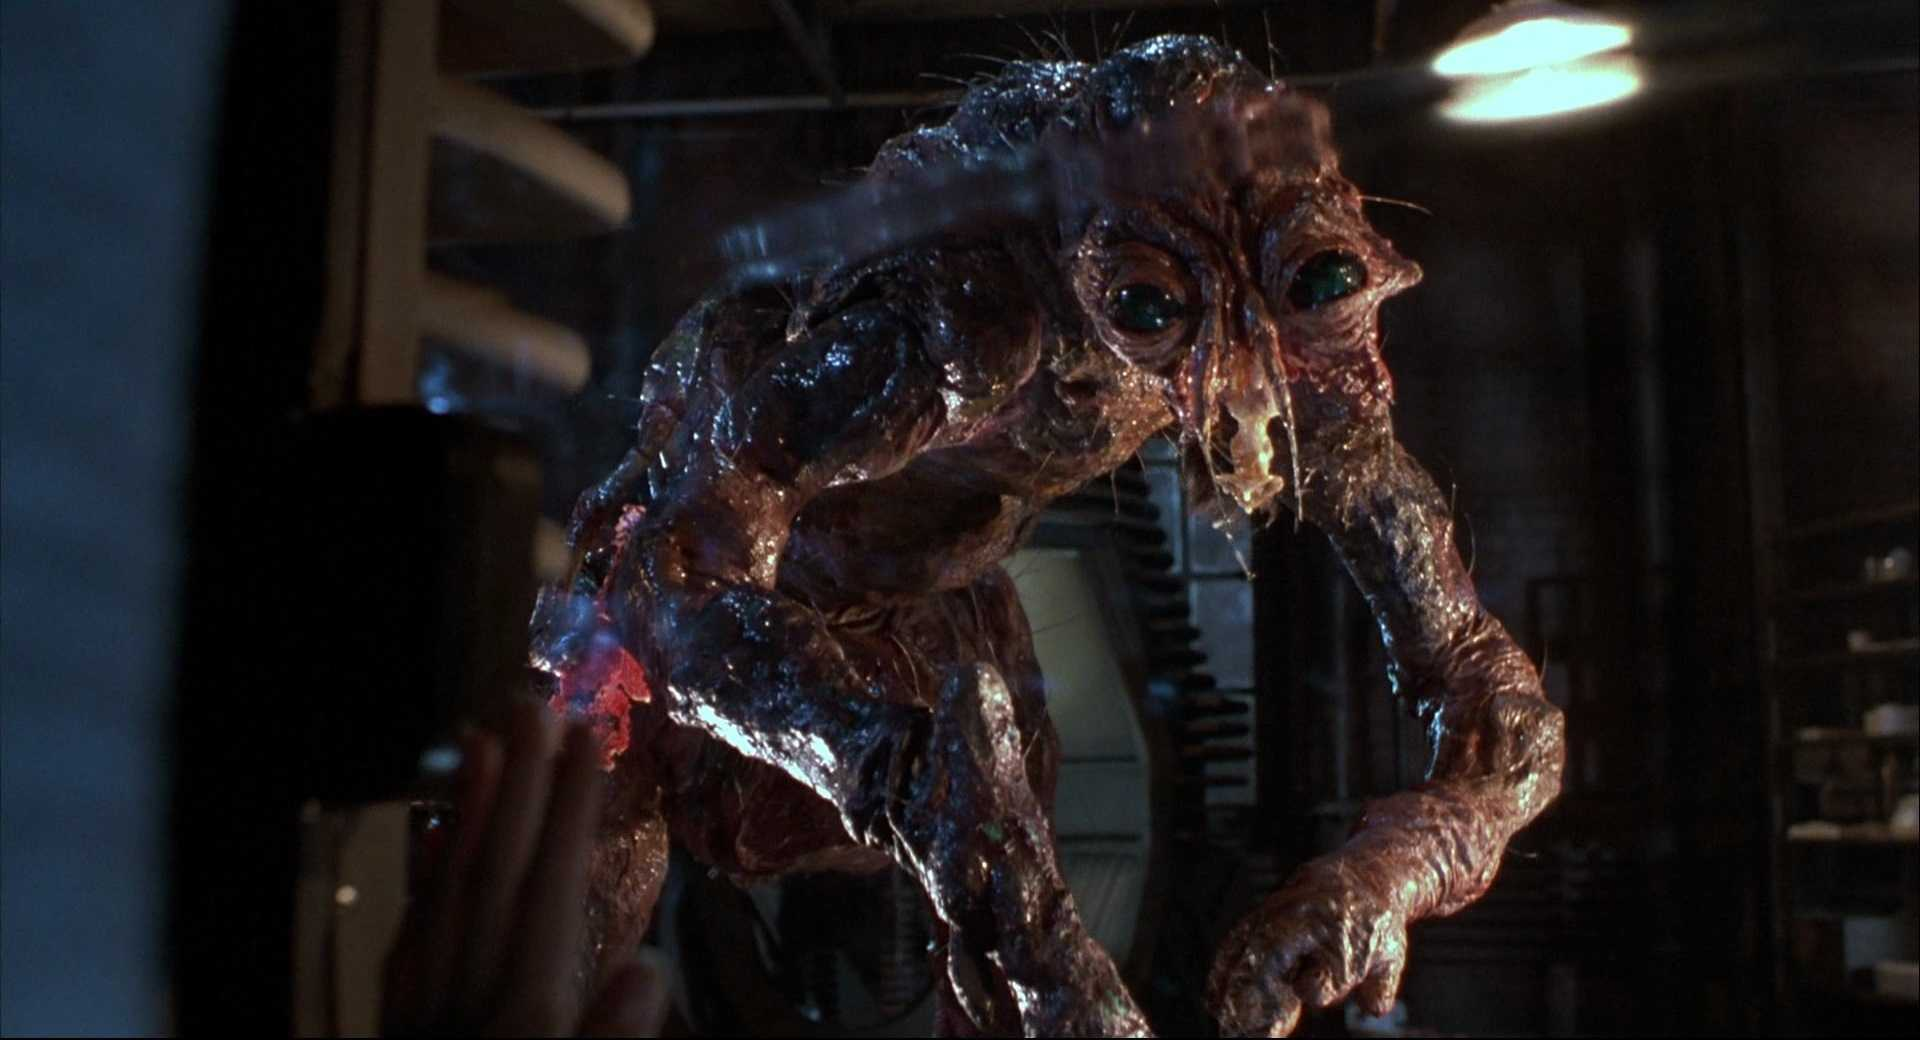 The fully mutated Brundlefly in The Fly (1986)